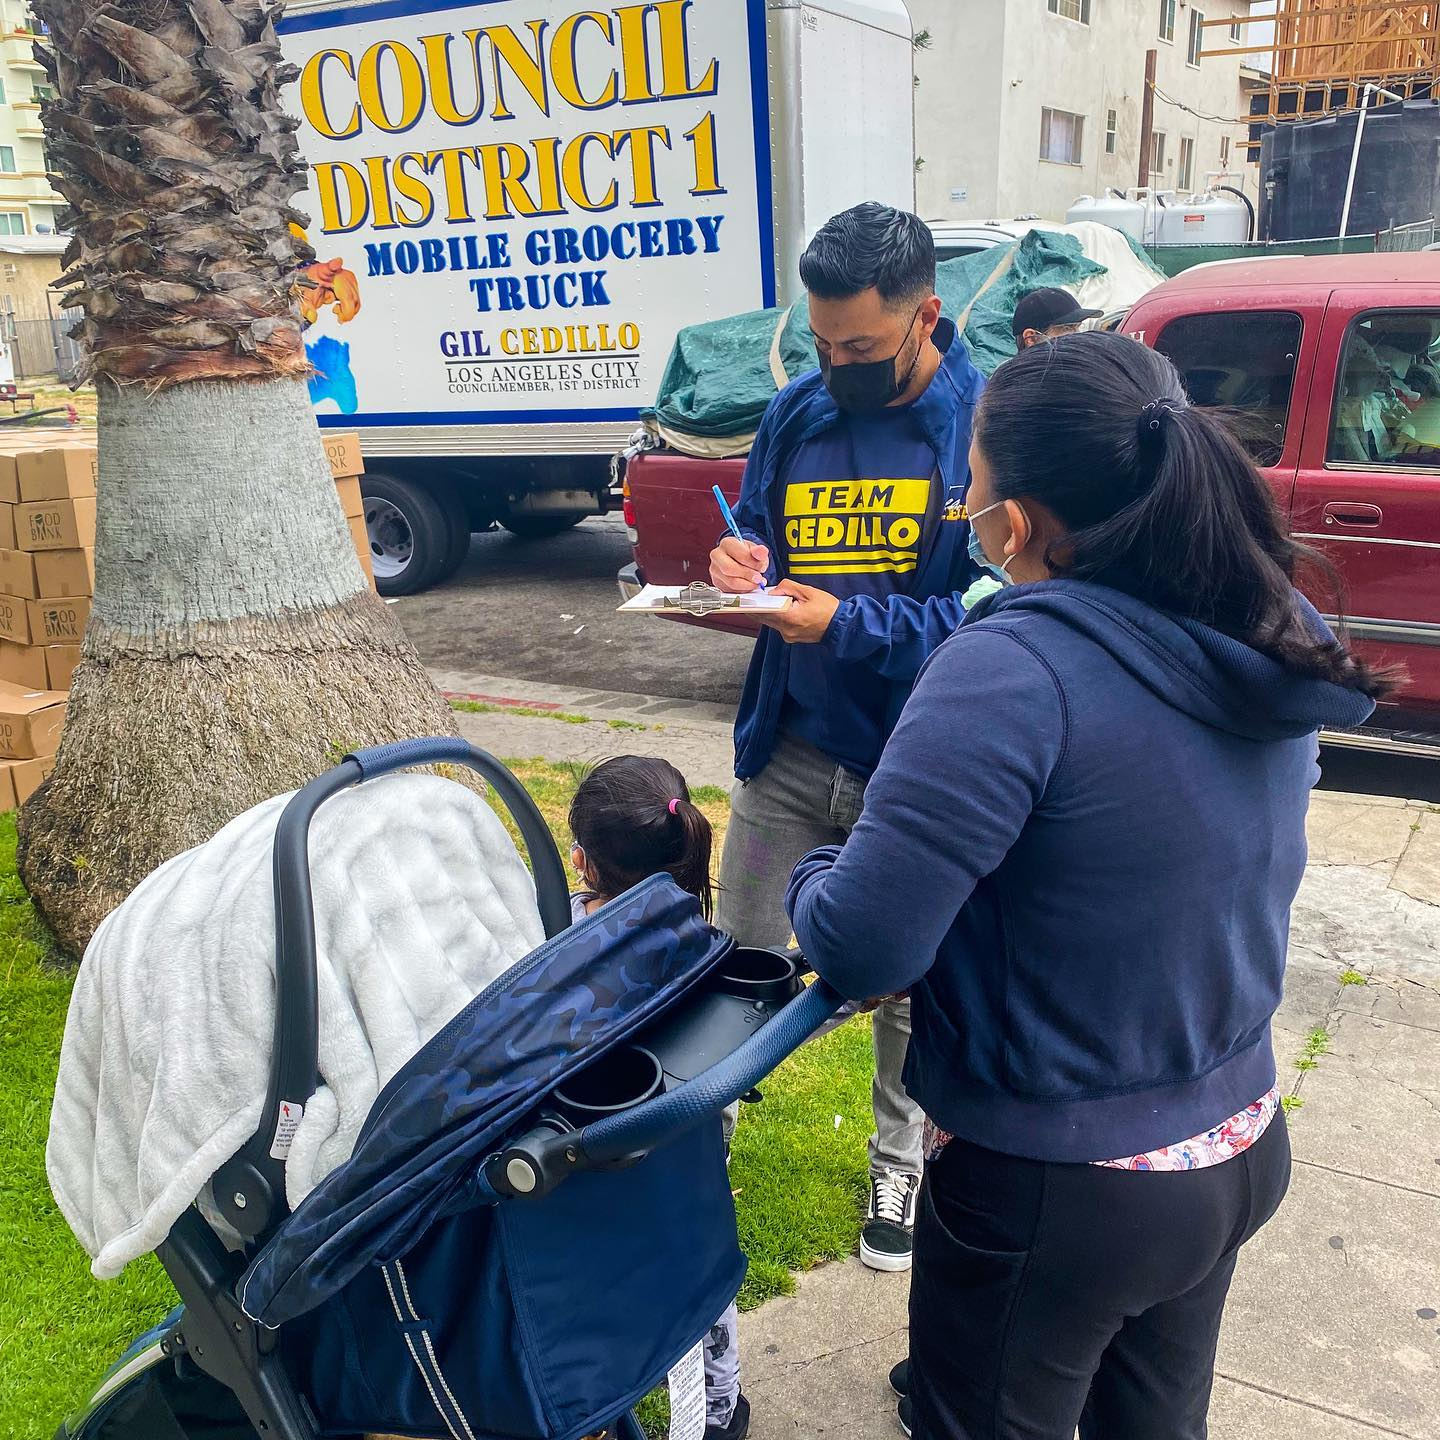 Councilmember Gil Cedillo's Mobile Grocery Truck was parked Leeward Ave and Magnolia St in Westlake 5-14-2021 #1